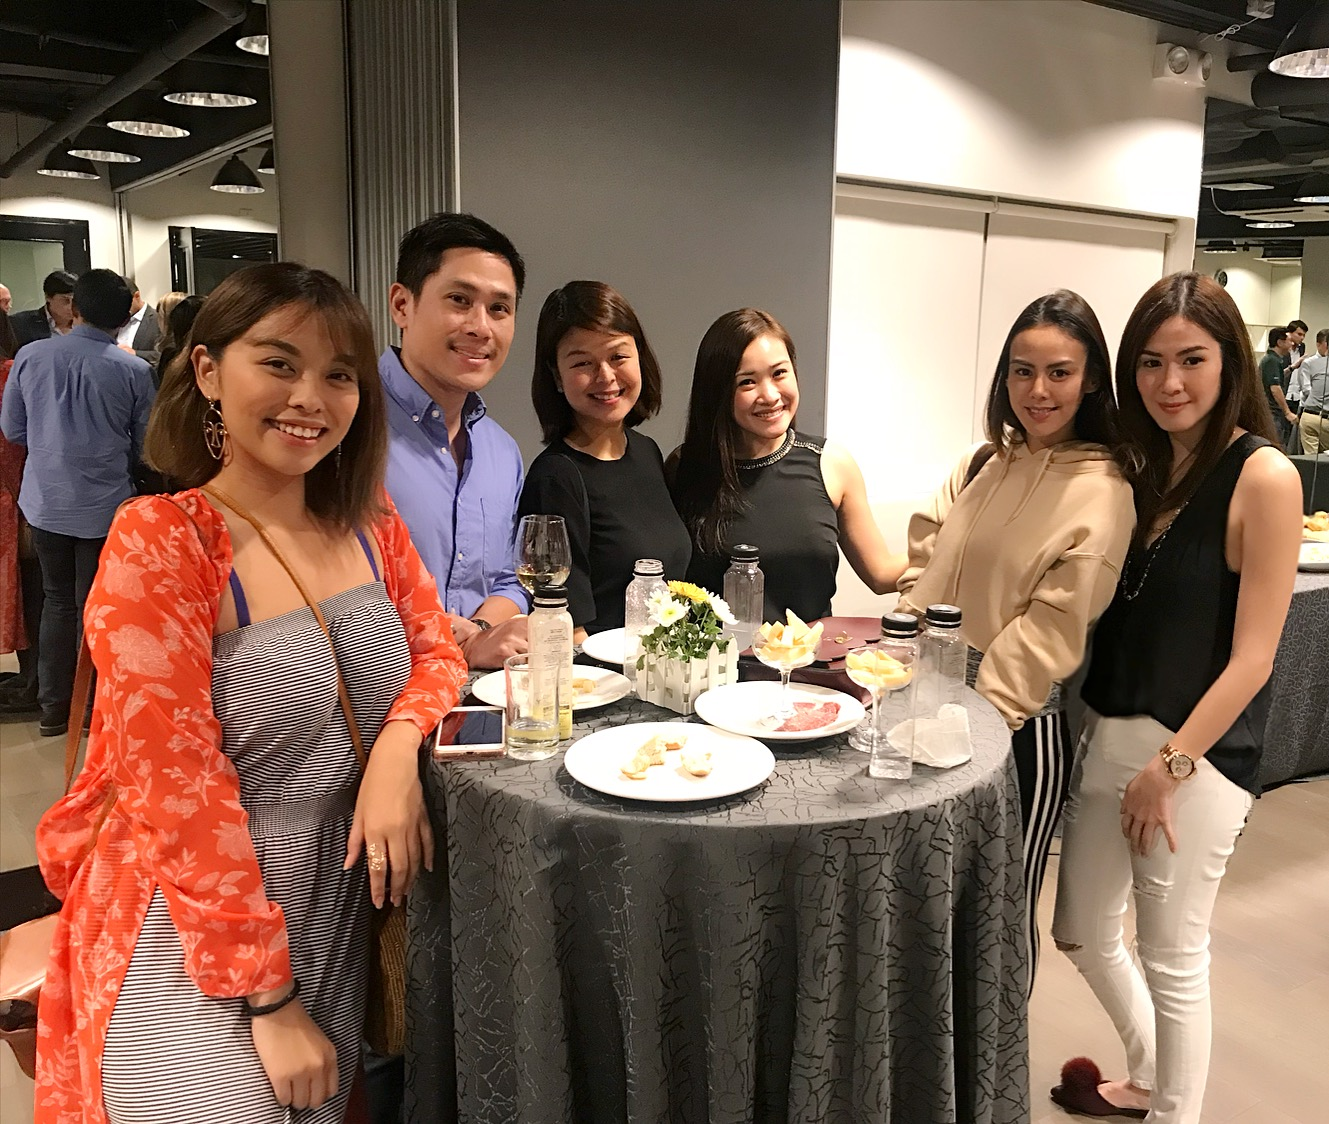 Here we are enjoying the hors d'oeuvres served at the launch! L-R Lexie Puzon, Macky Coronel, May Liwanag, Lyn Martinez, Janina Manipol, and Me.